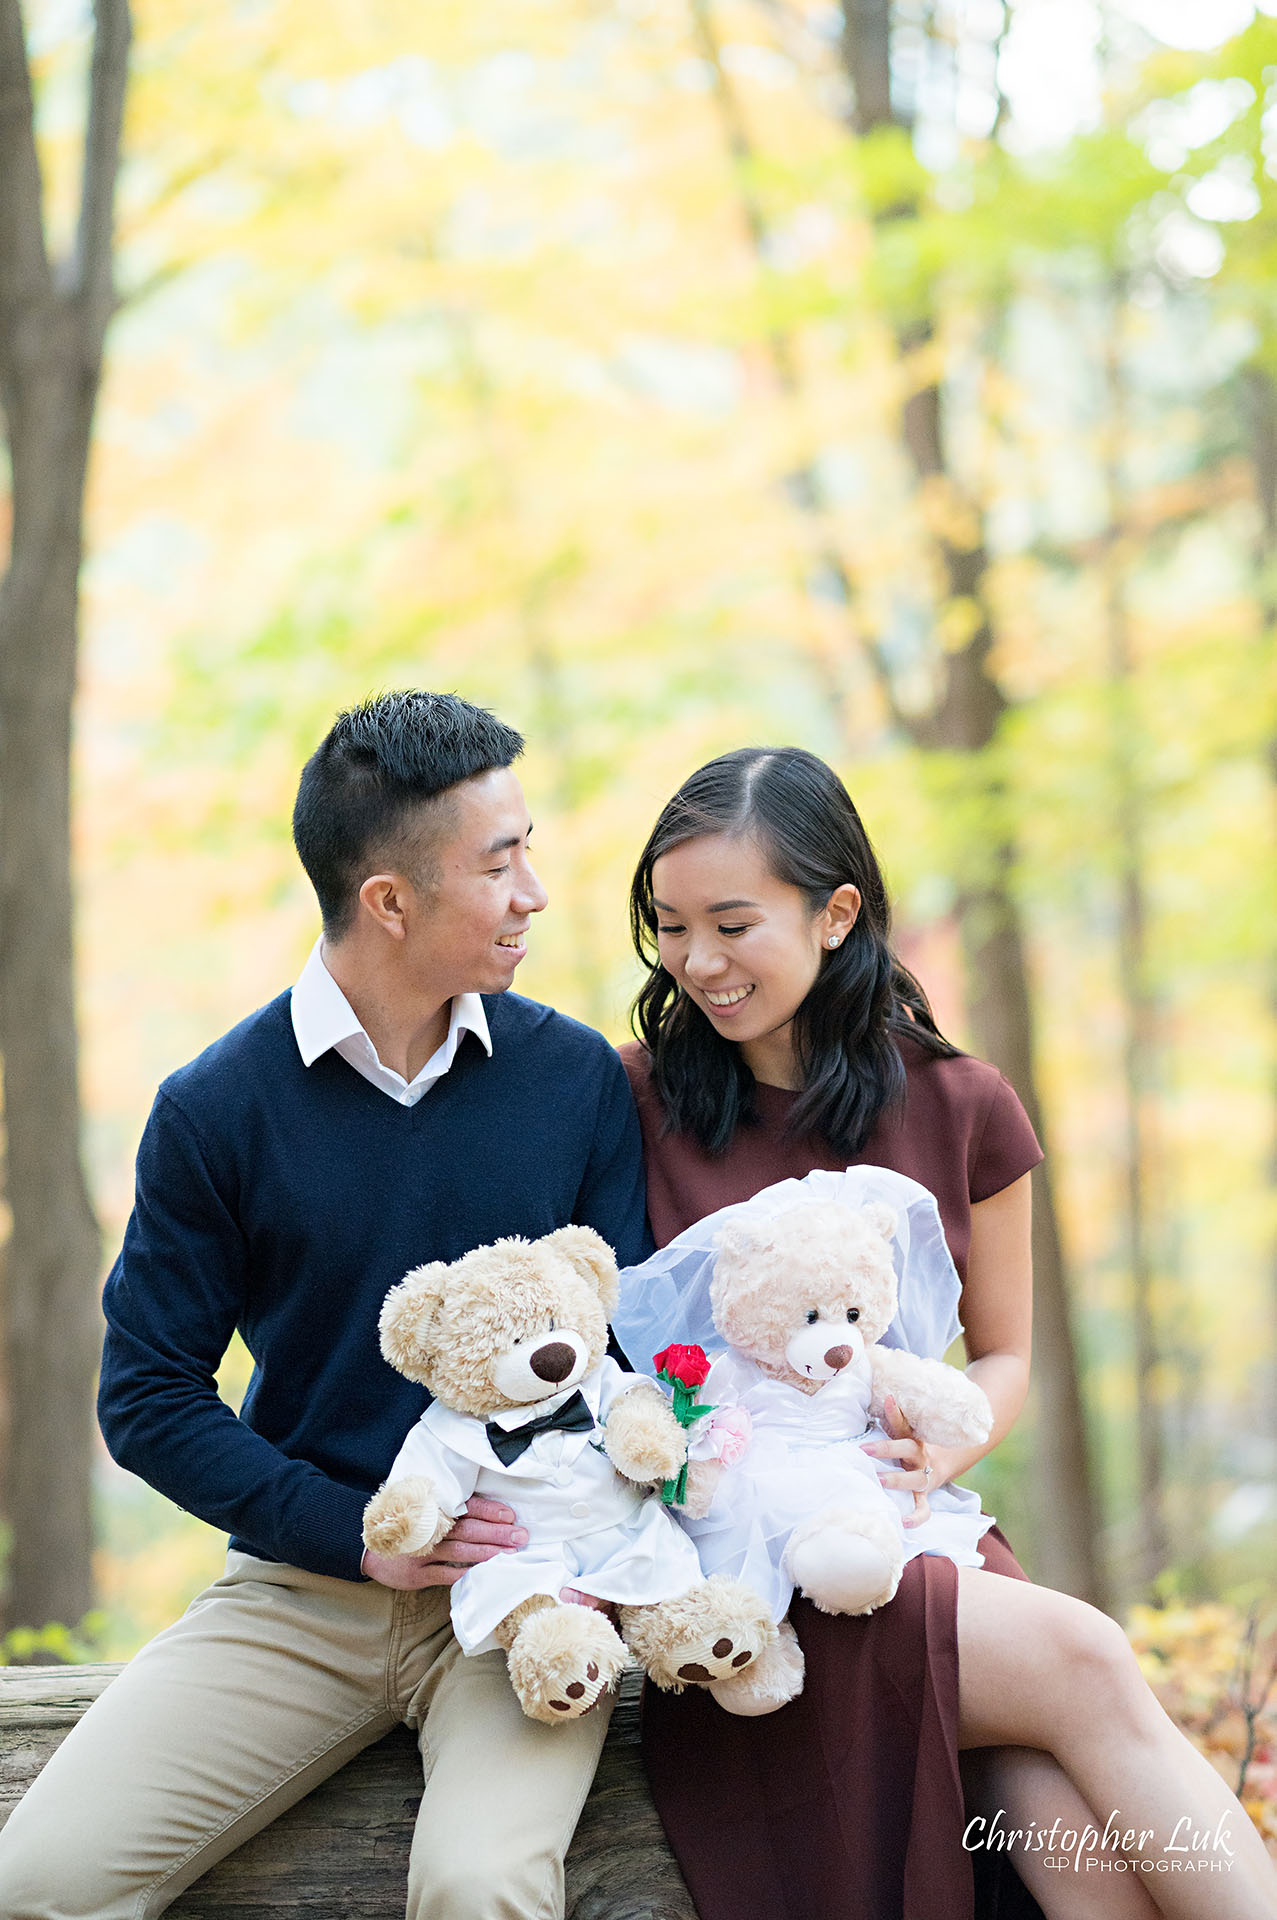 Christopher Luk Toronto Wedding Engagement Session Photographer Autumn Fall Leaves Natural Candid Photojournalistic Bride Groom Hiking Trail Stuffed Animal WongFu Productions Spencer Bear Trees Log Smiling Happy Portrait